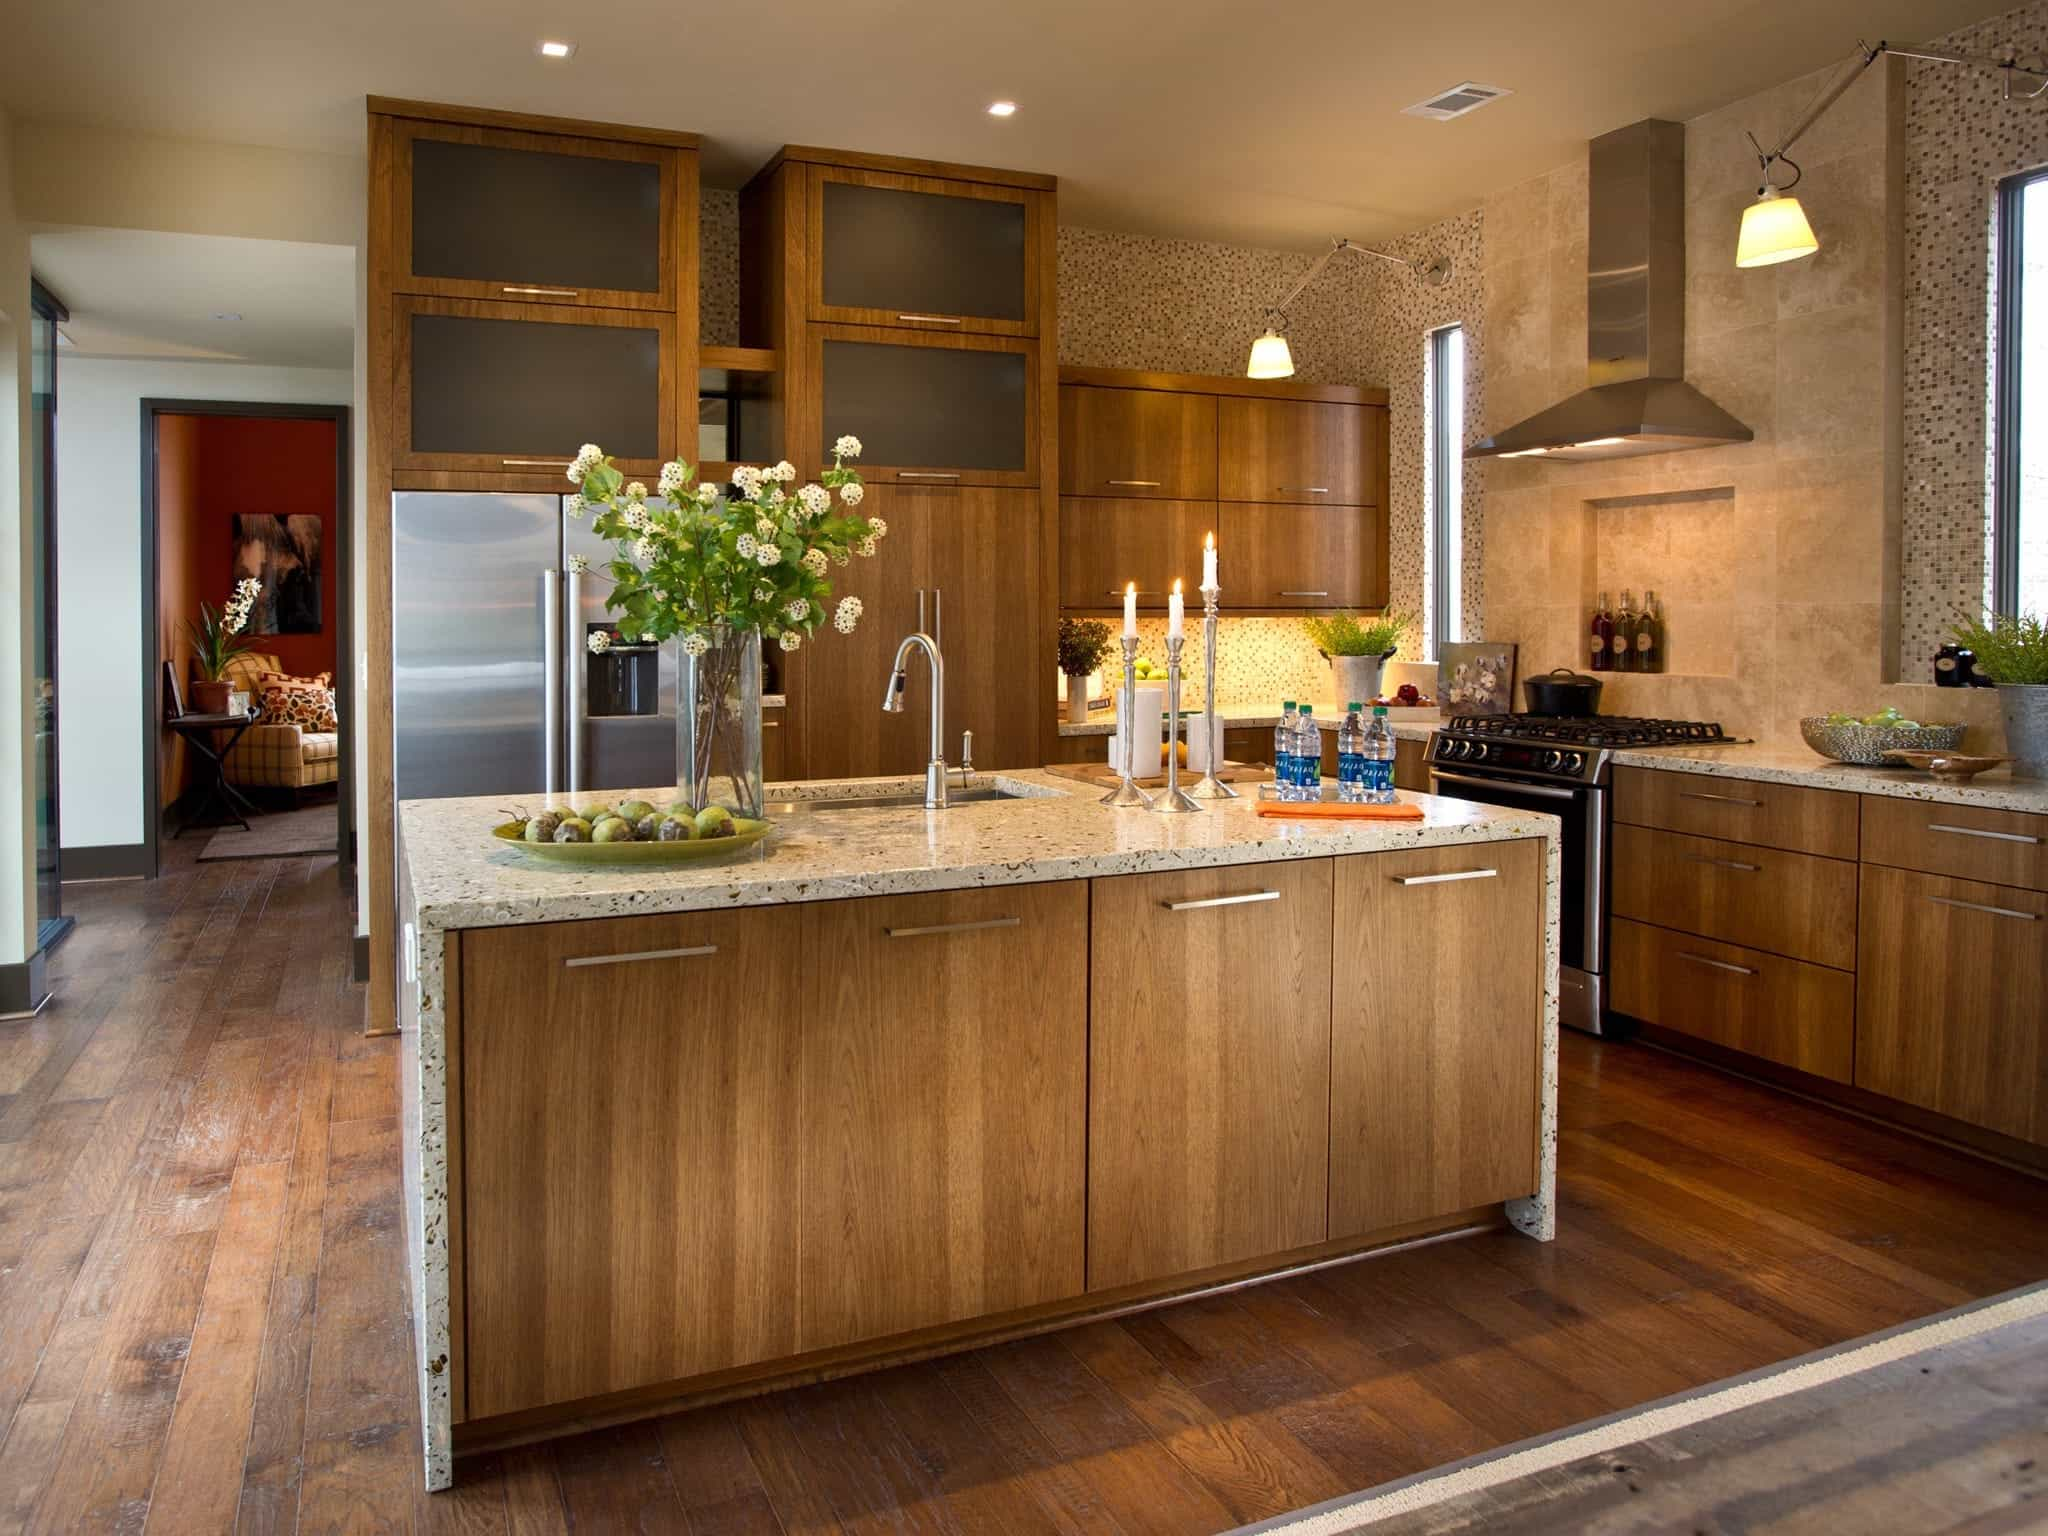 2017 Contemporary Kitchen With Hickory Cabinets (Photo 22 of 26)